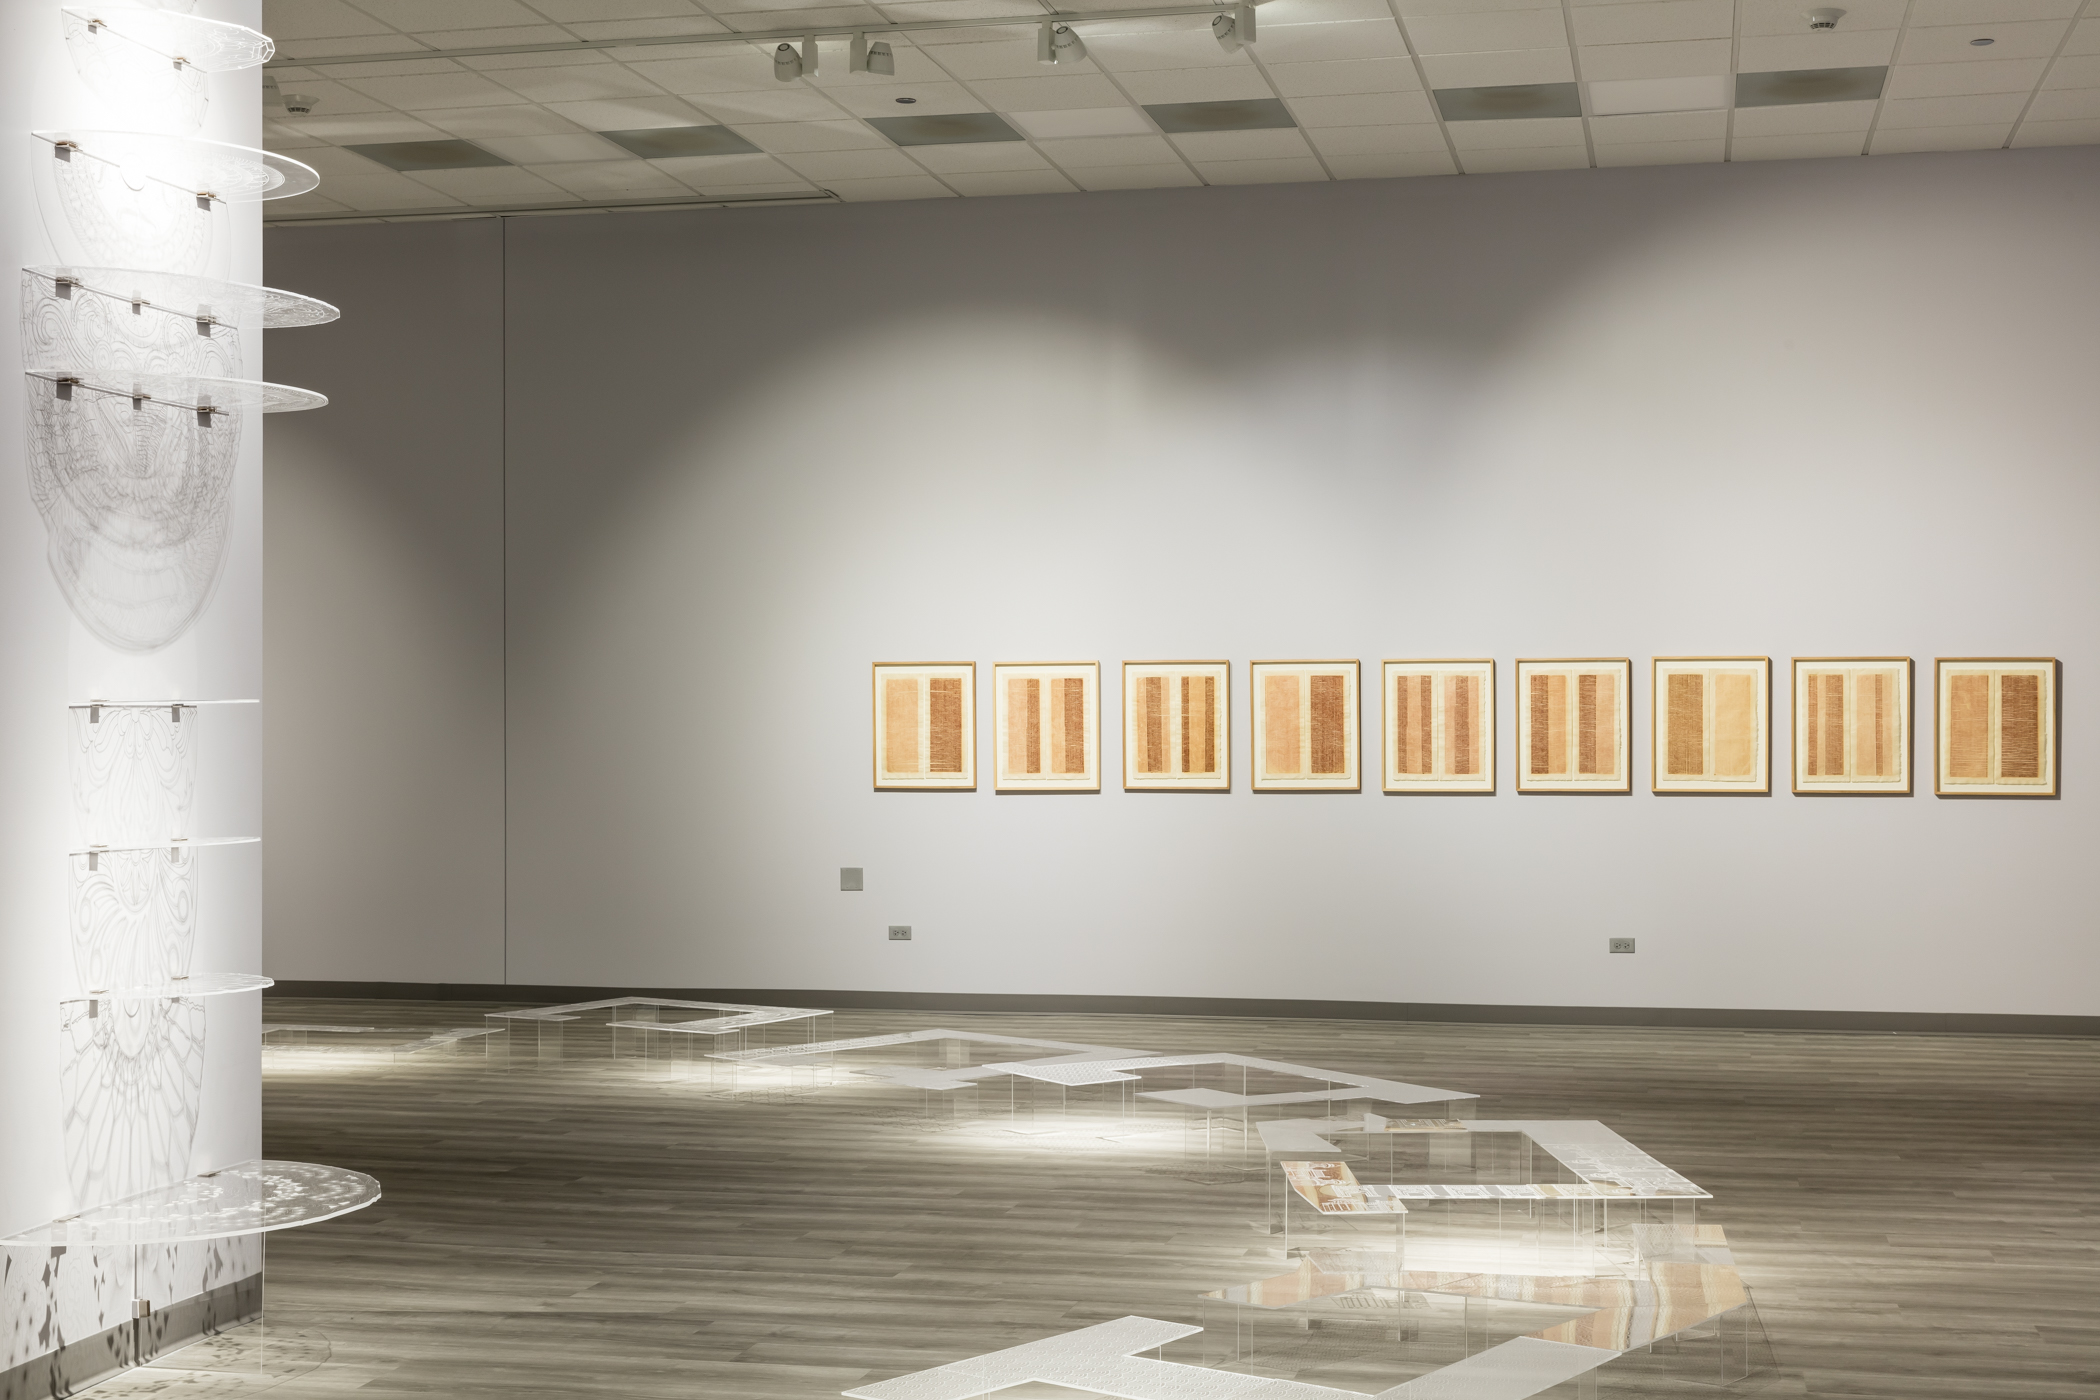 Six wooden frames are each filled with pieces of broken clay in different configurations; the voids have equal visual importance and presence. Gunjan Kumar, Broken Whole, 2021. Clay. Photo Credit: Jonathan Castillo, Courtesy of South Asia Institute.